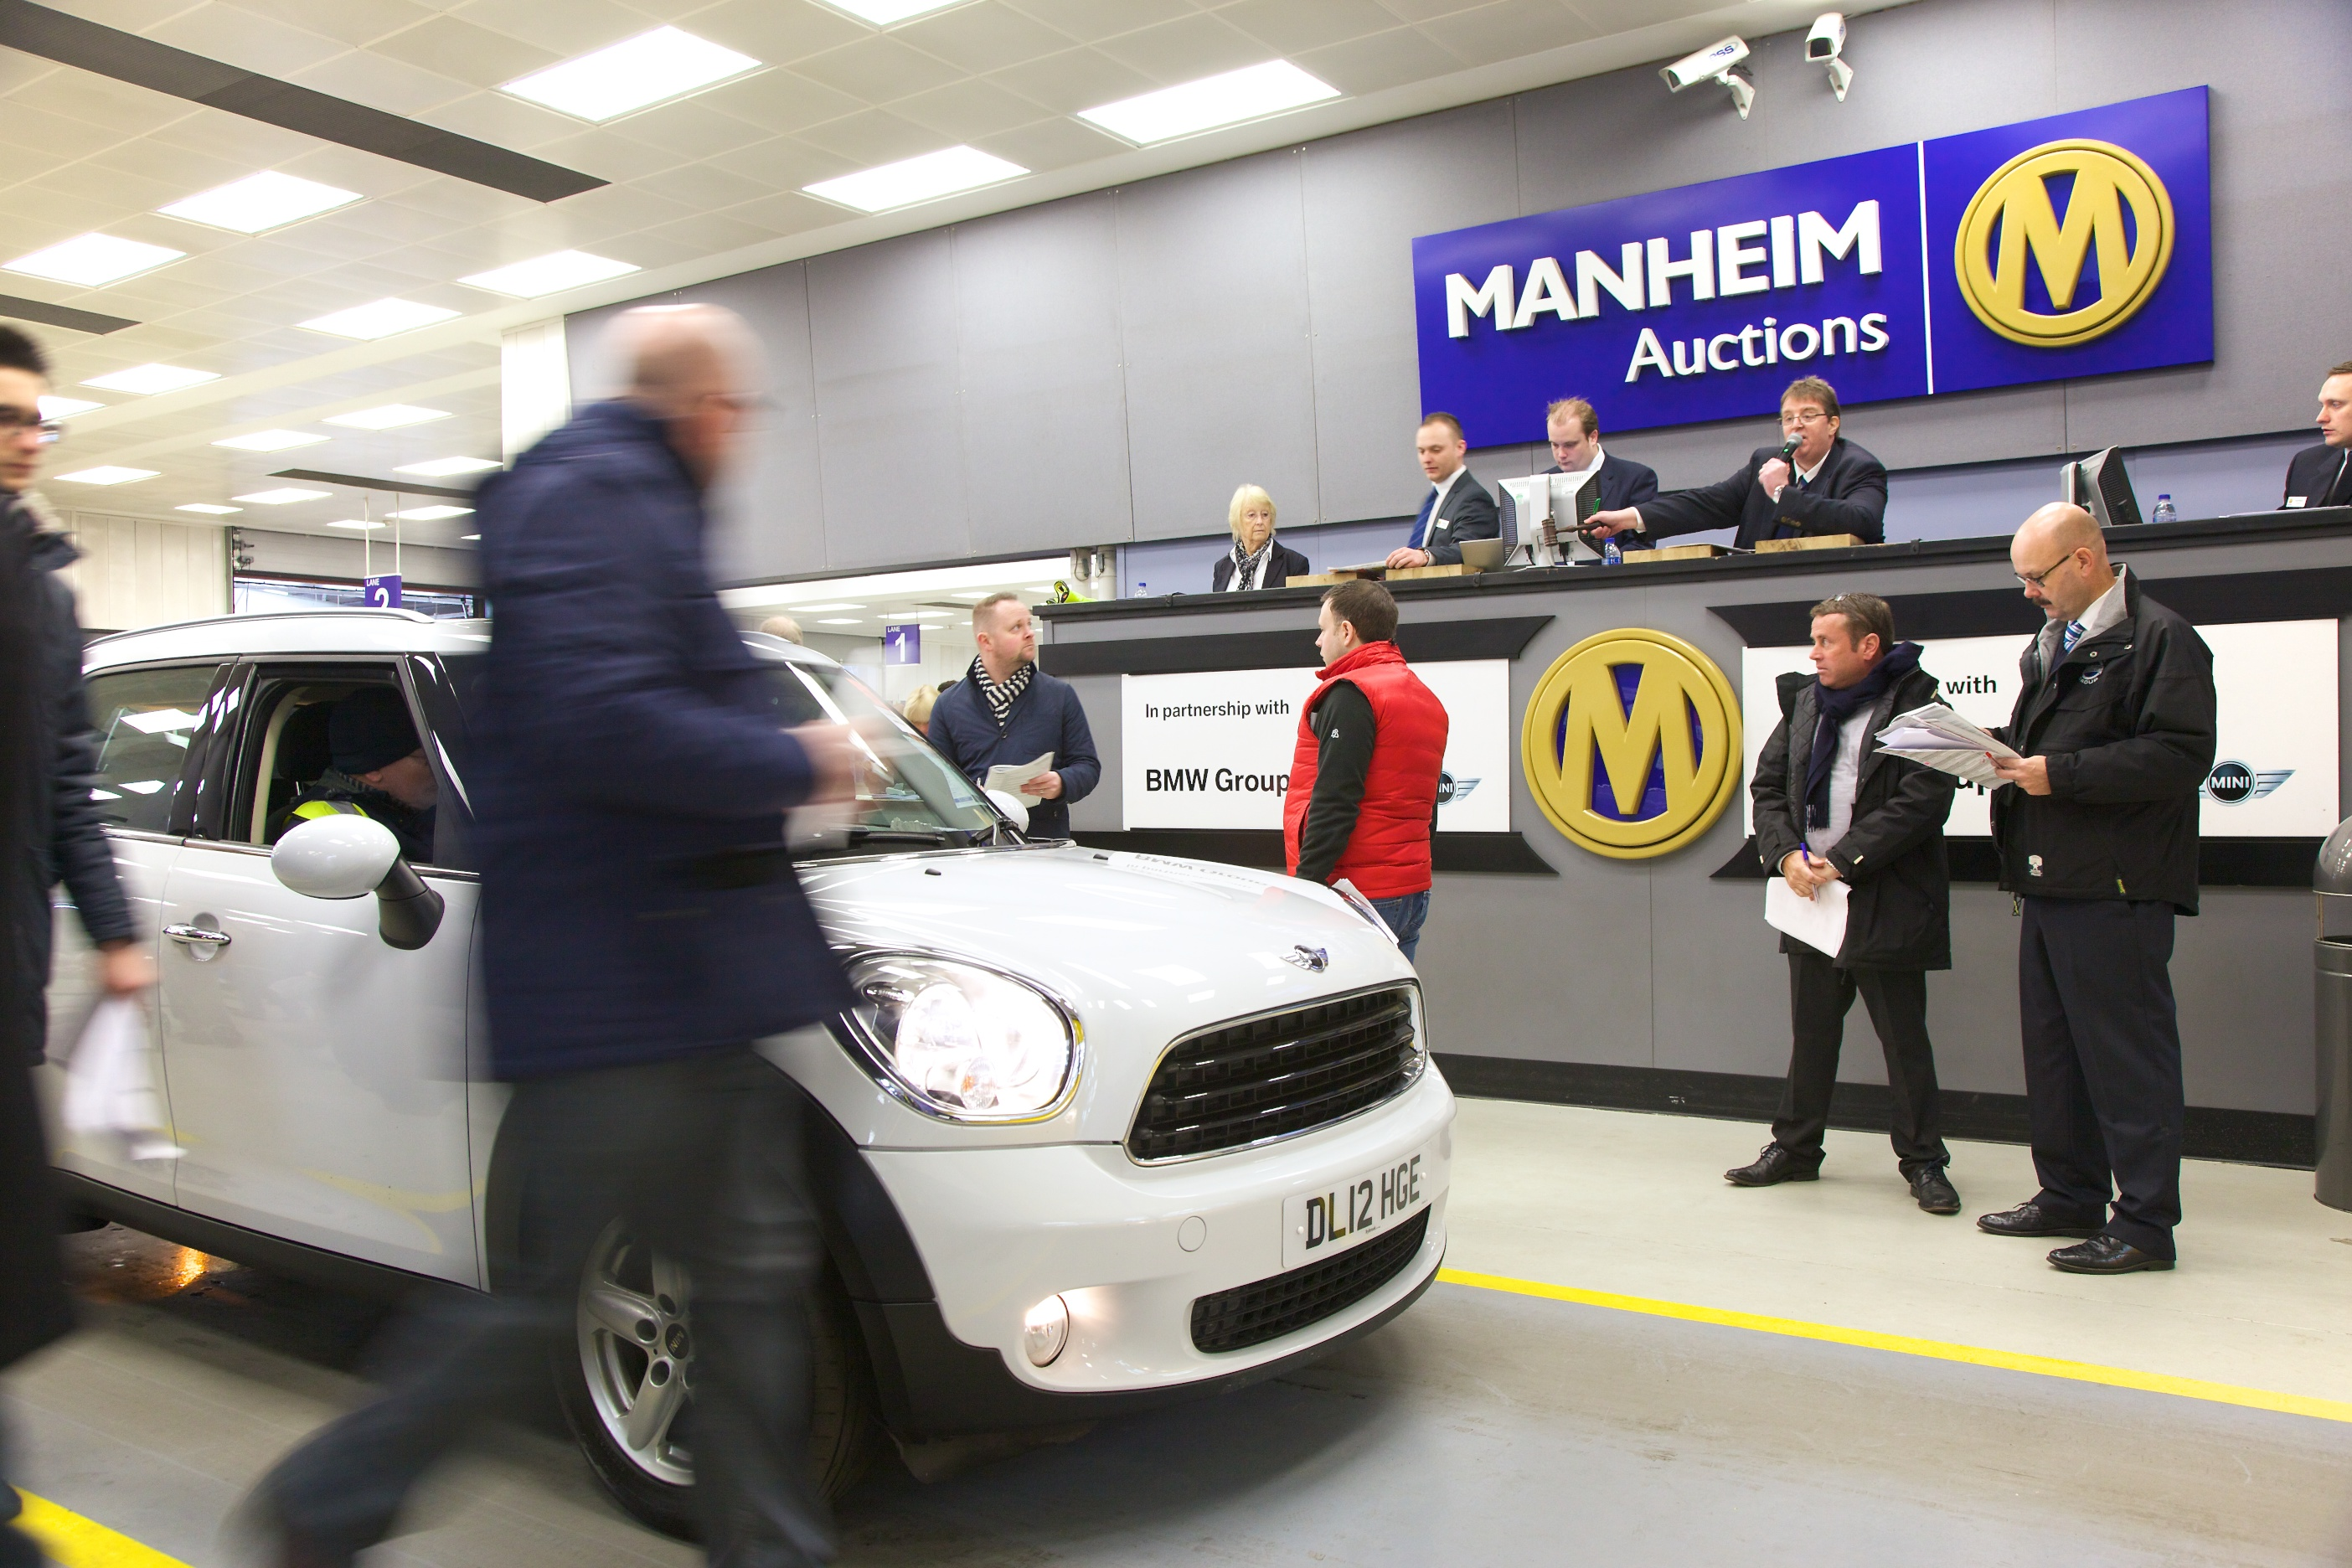 Manheim Car Auction: Double Record Breaking Day At Car Auctions